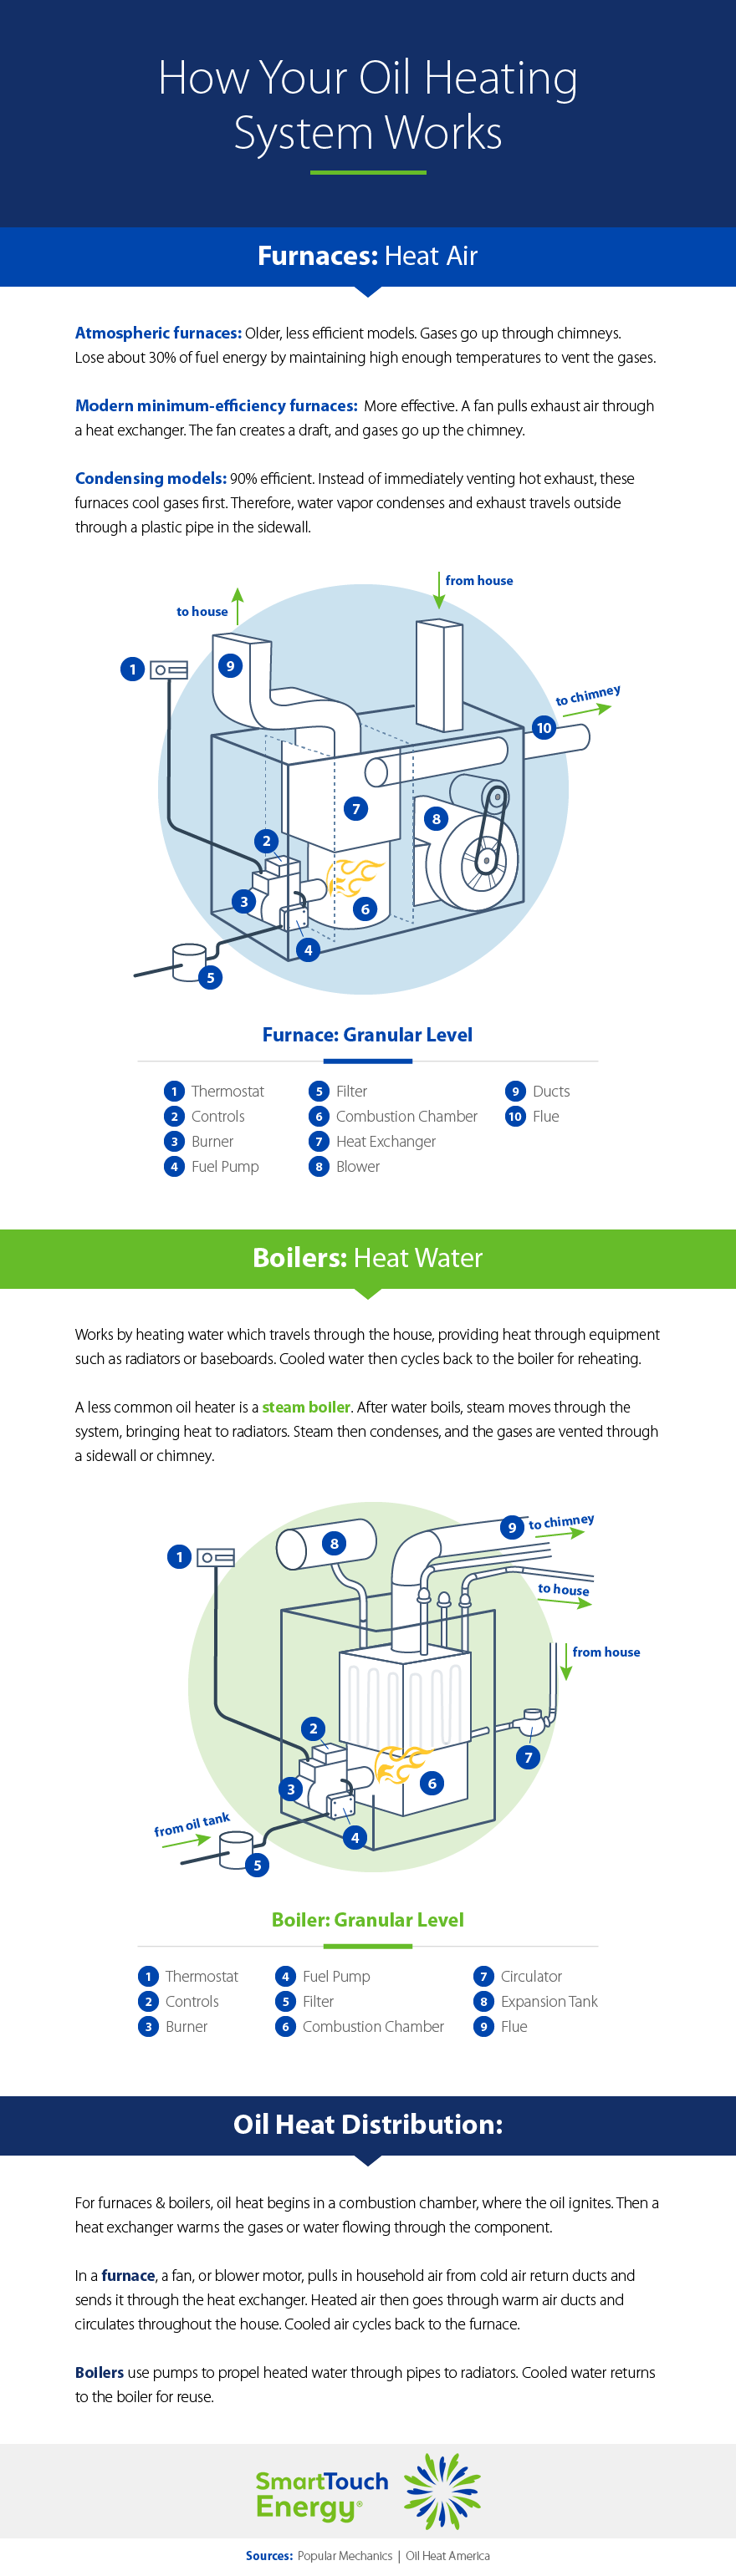 heating-system_mg-01.png